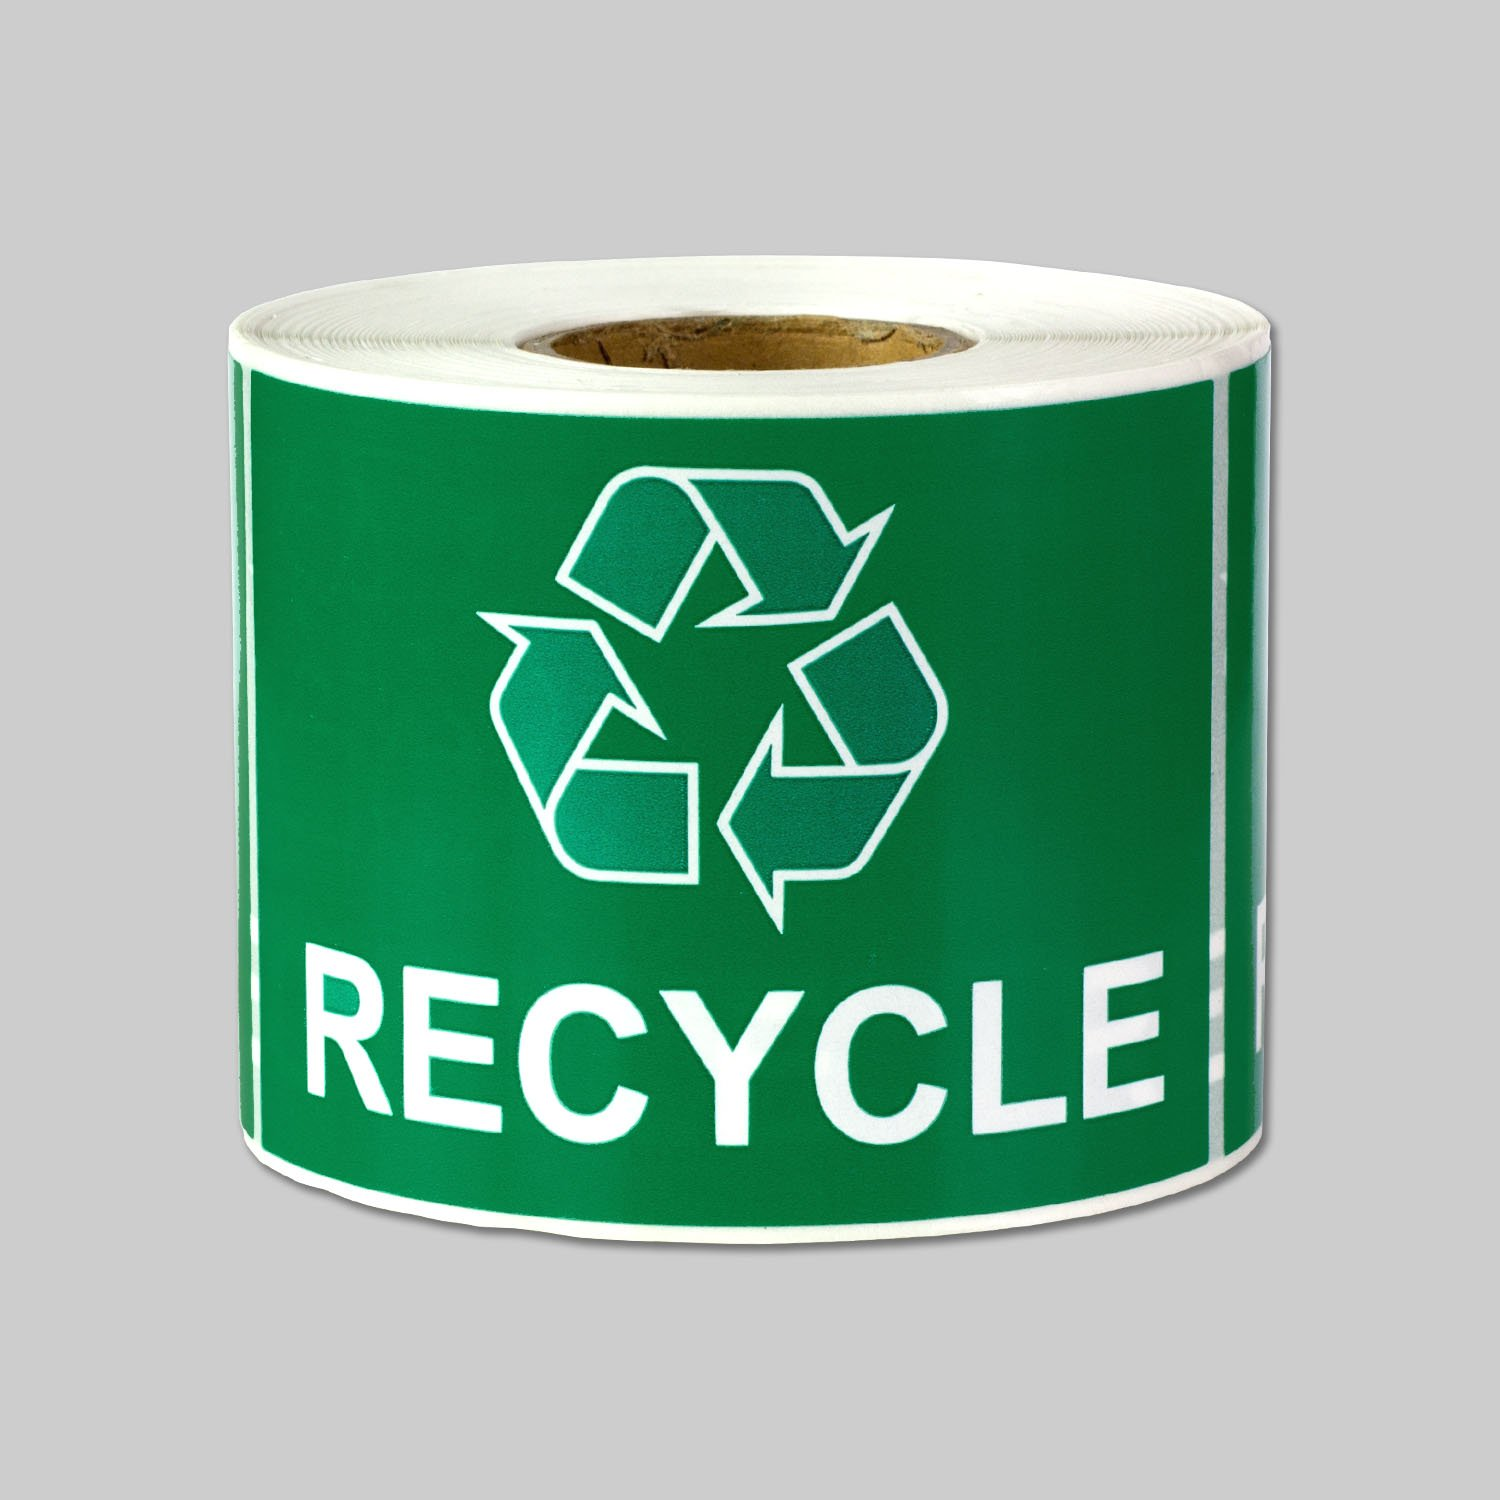 "Tuco Deals 3"" x 2"" Inch Large Green Backgound / Black Text Disposal and Trash Labels Square Self Adhesive Stickers / Labels - ""Recycle"""